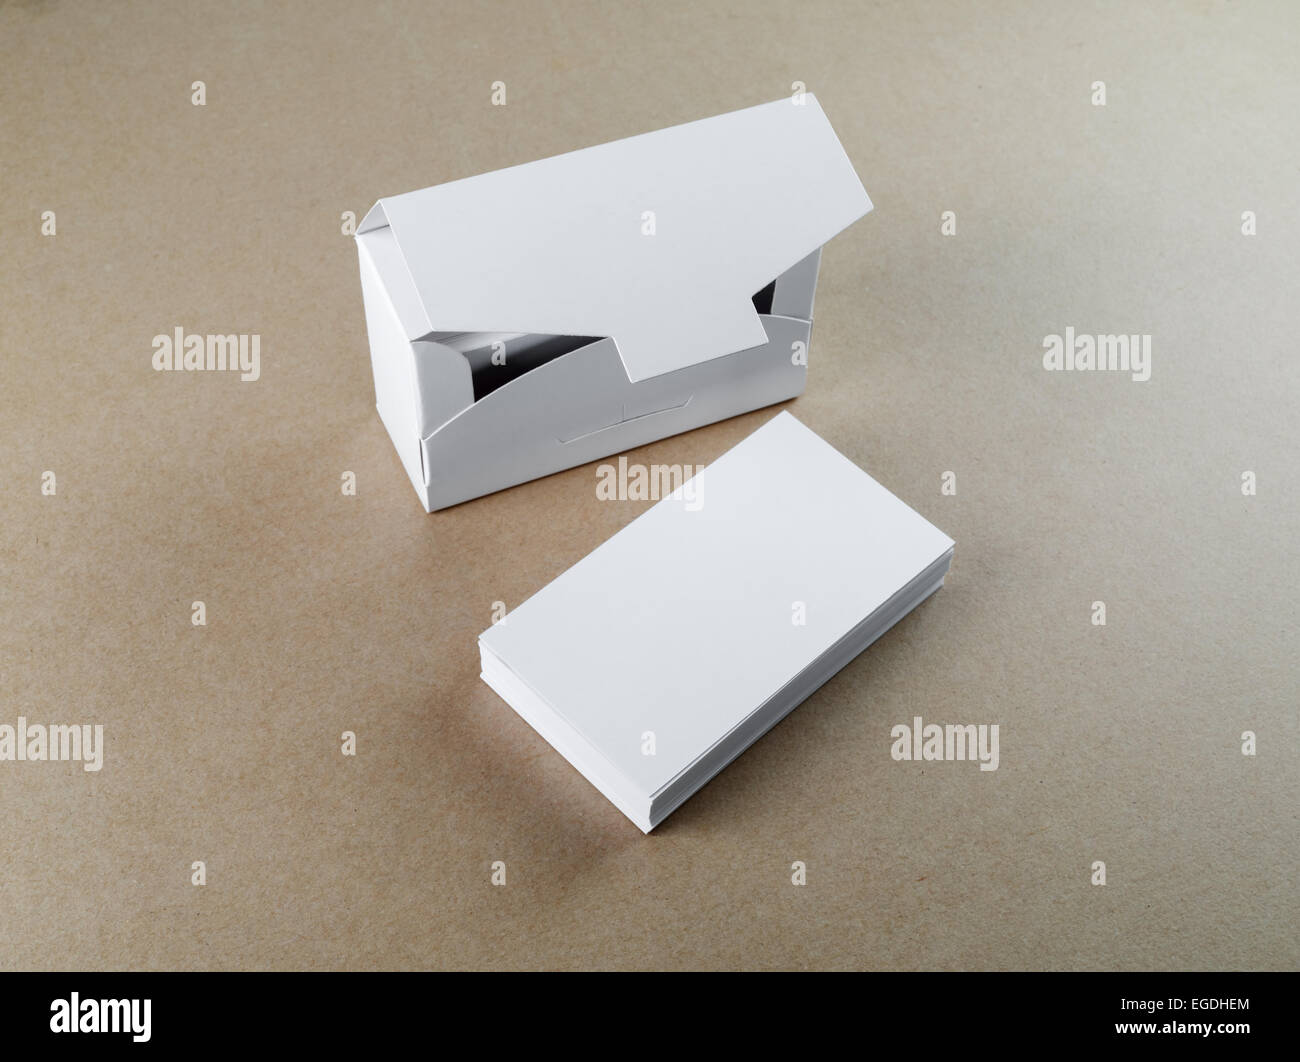 Blank business cards and a box for them on the table. Template for ...